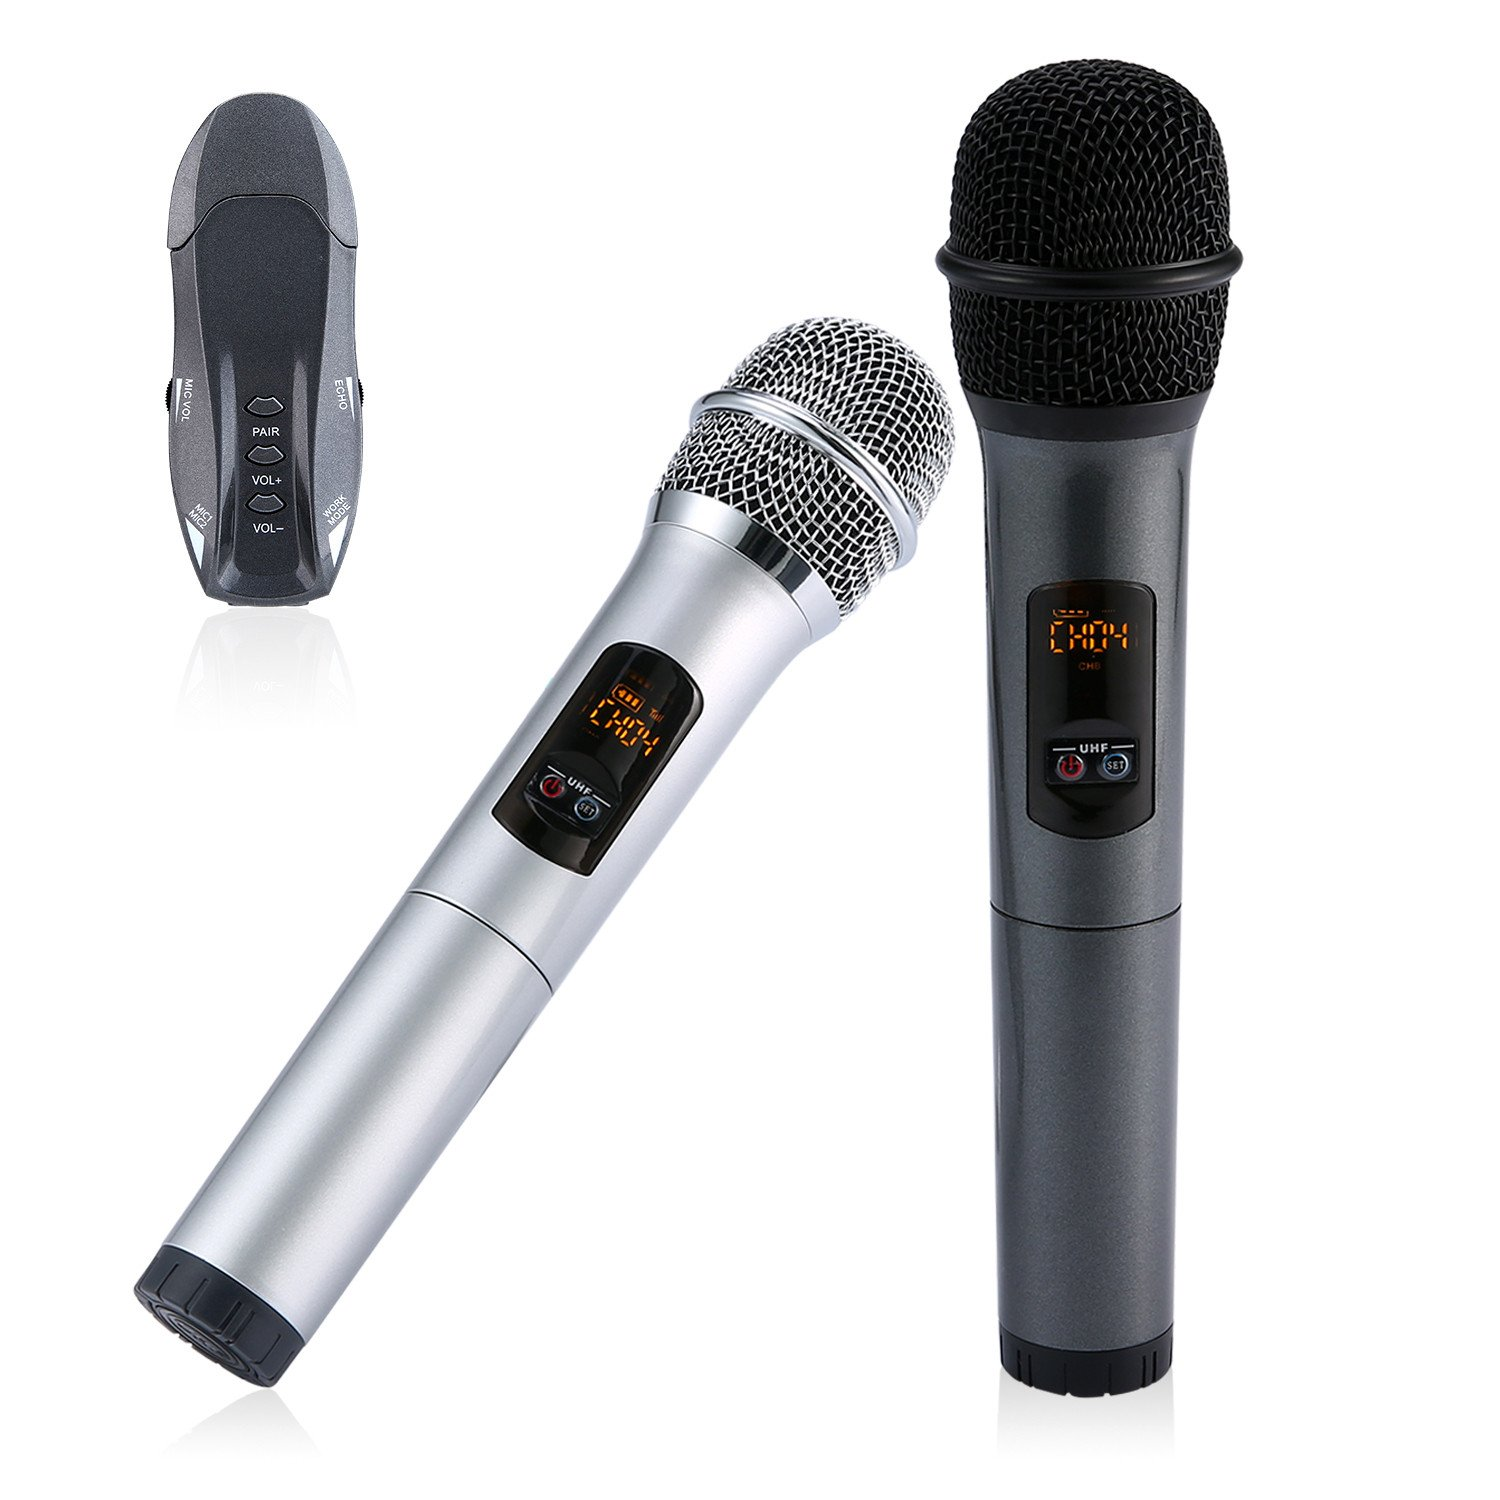 Wireless Handheld Microphone, Umiwe Portable UHF Karaoke Microphone System Moving Coil Mic Machine for Home KTV, Outdoor Wedding, Conference B071471V4N